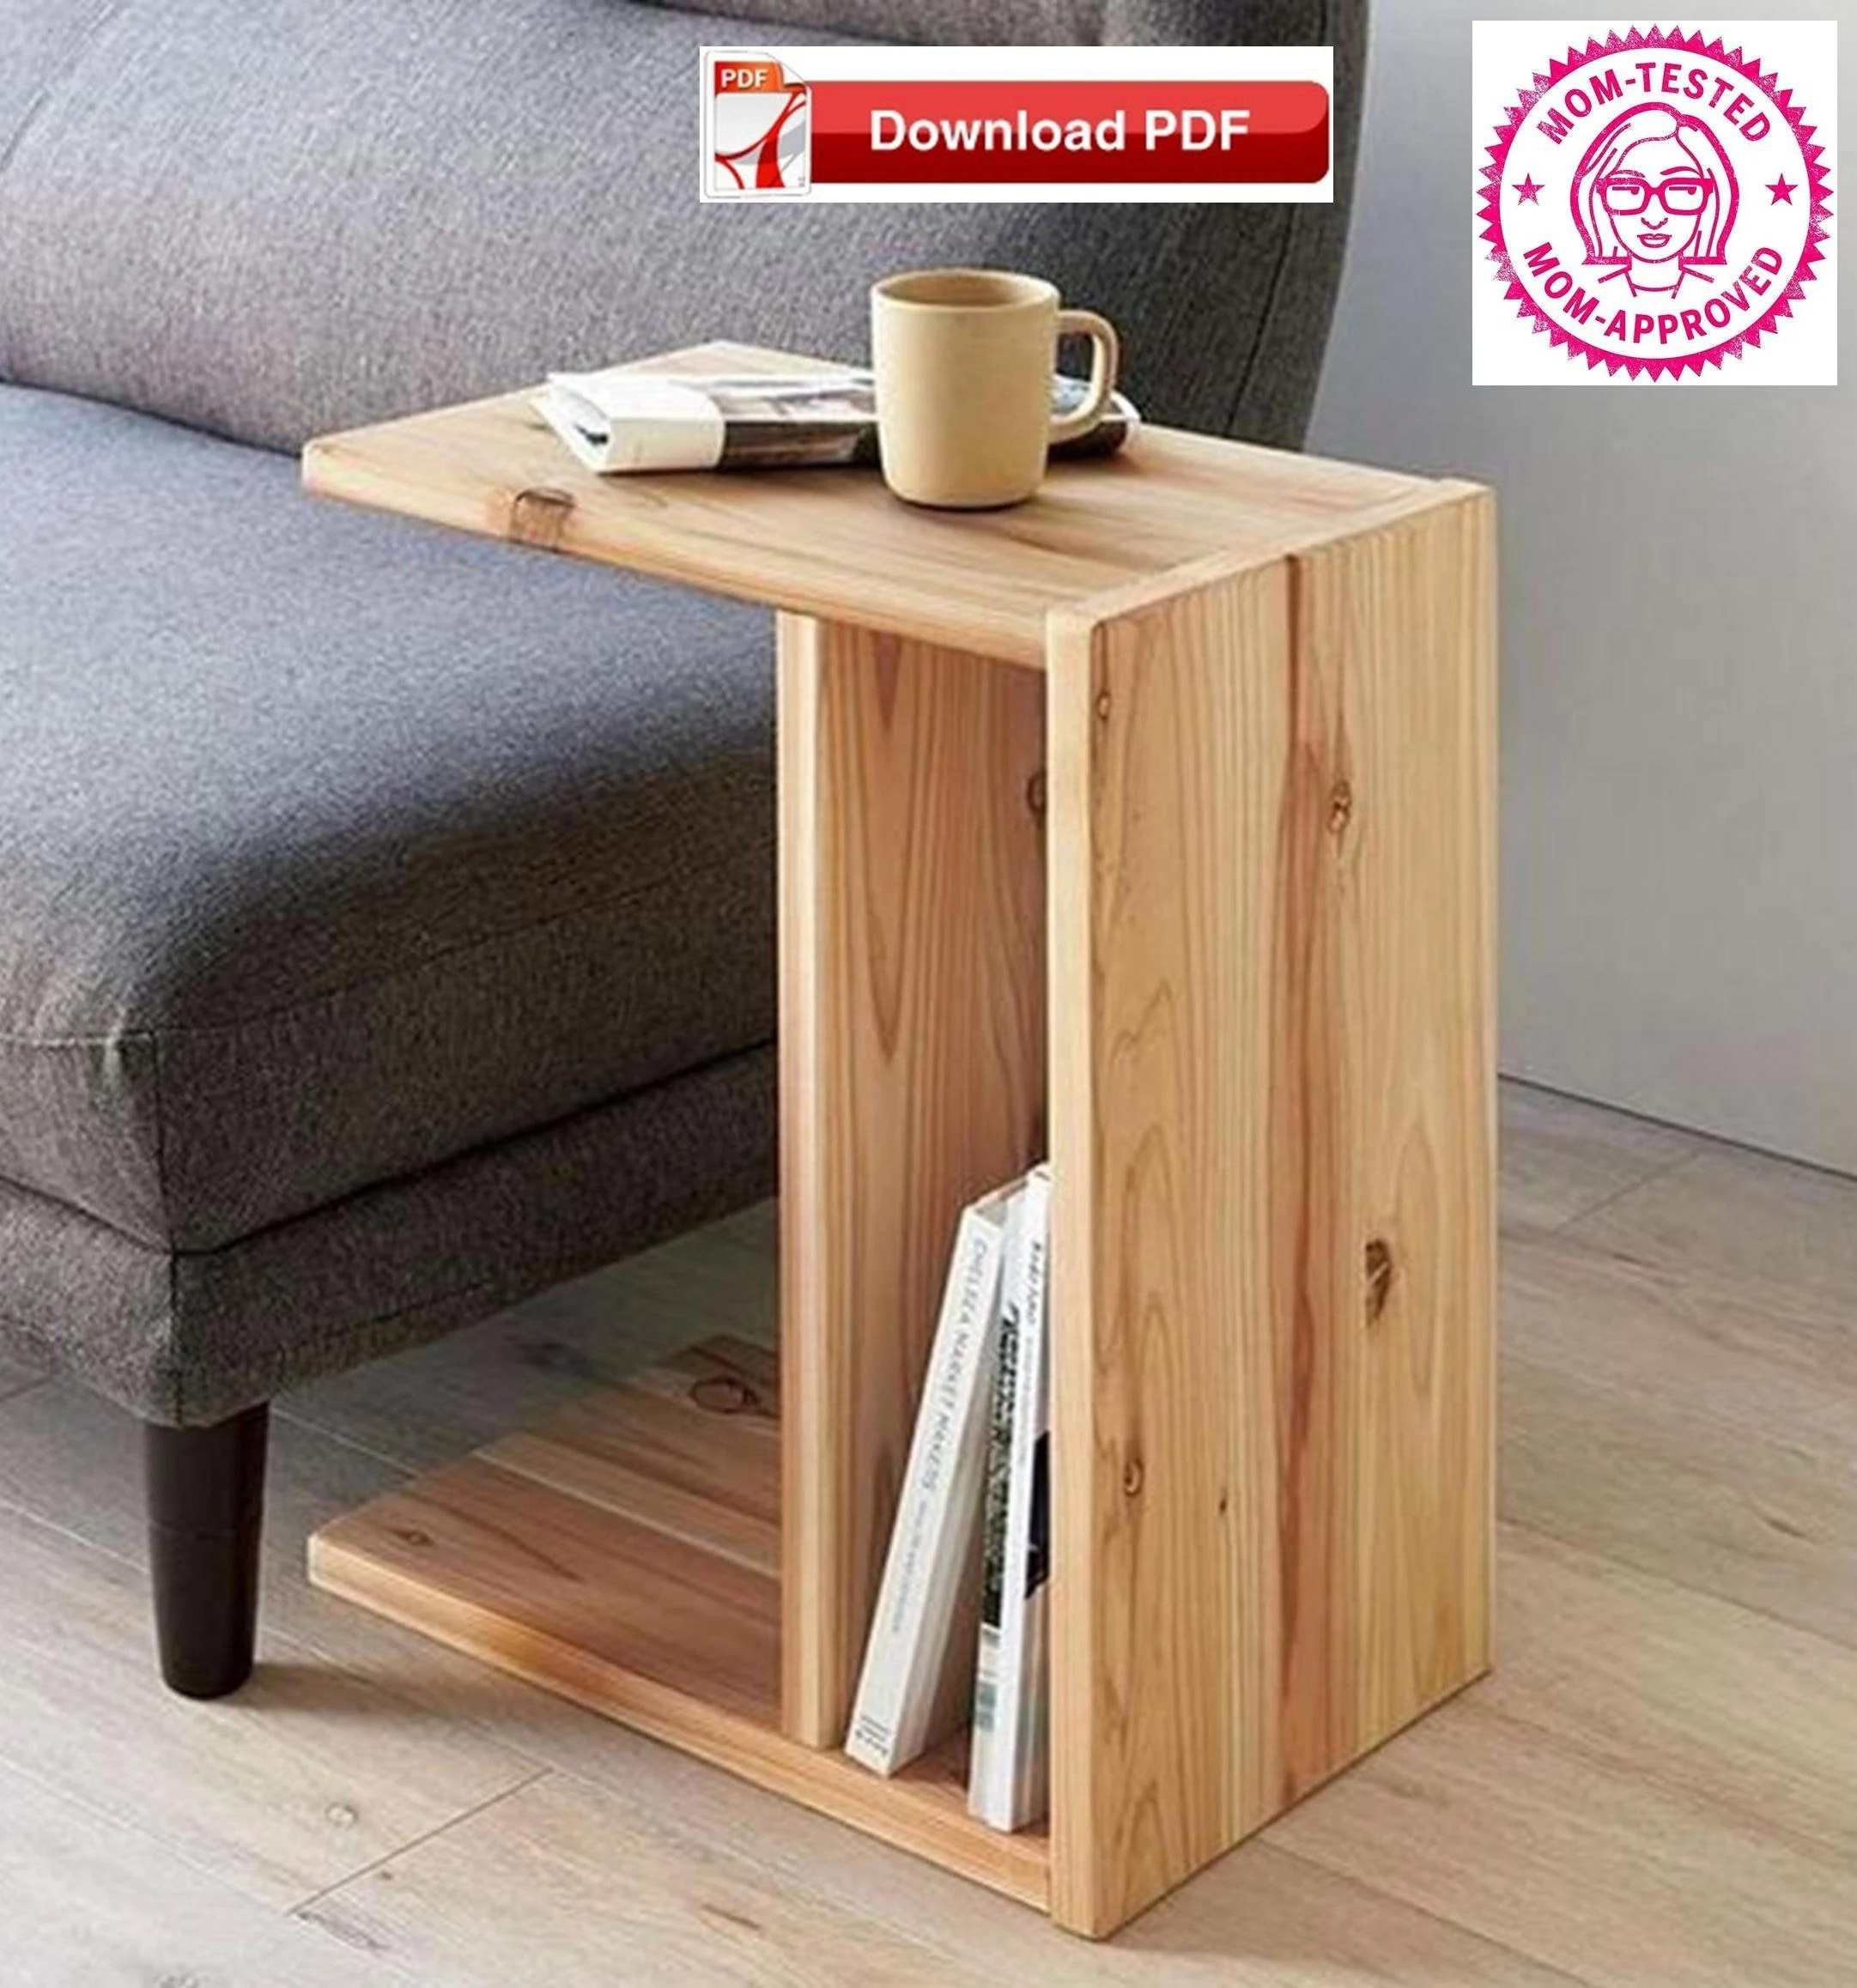 tv tray stand plan book stand plan end table plan sofa arm stand plan sofa stand plan wood tray plan tv stand plan tv tray stand pdf pattern